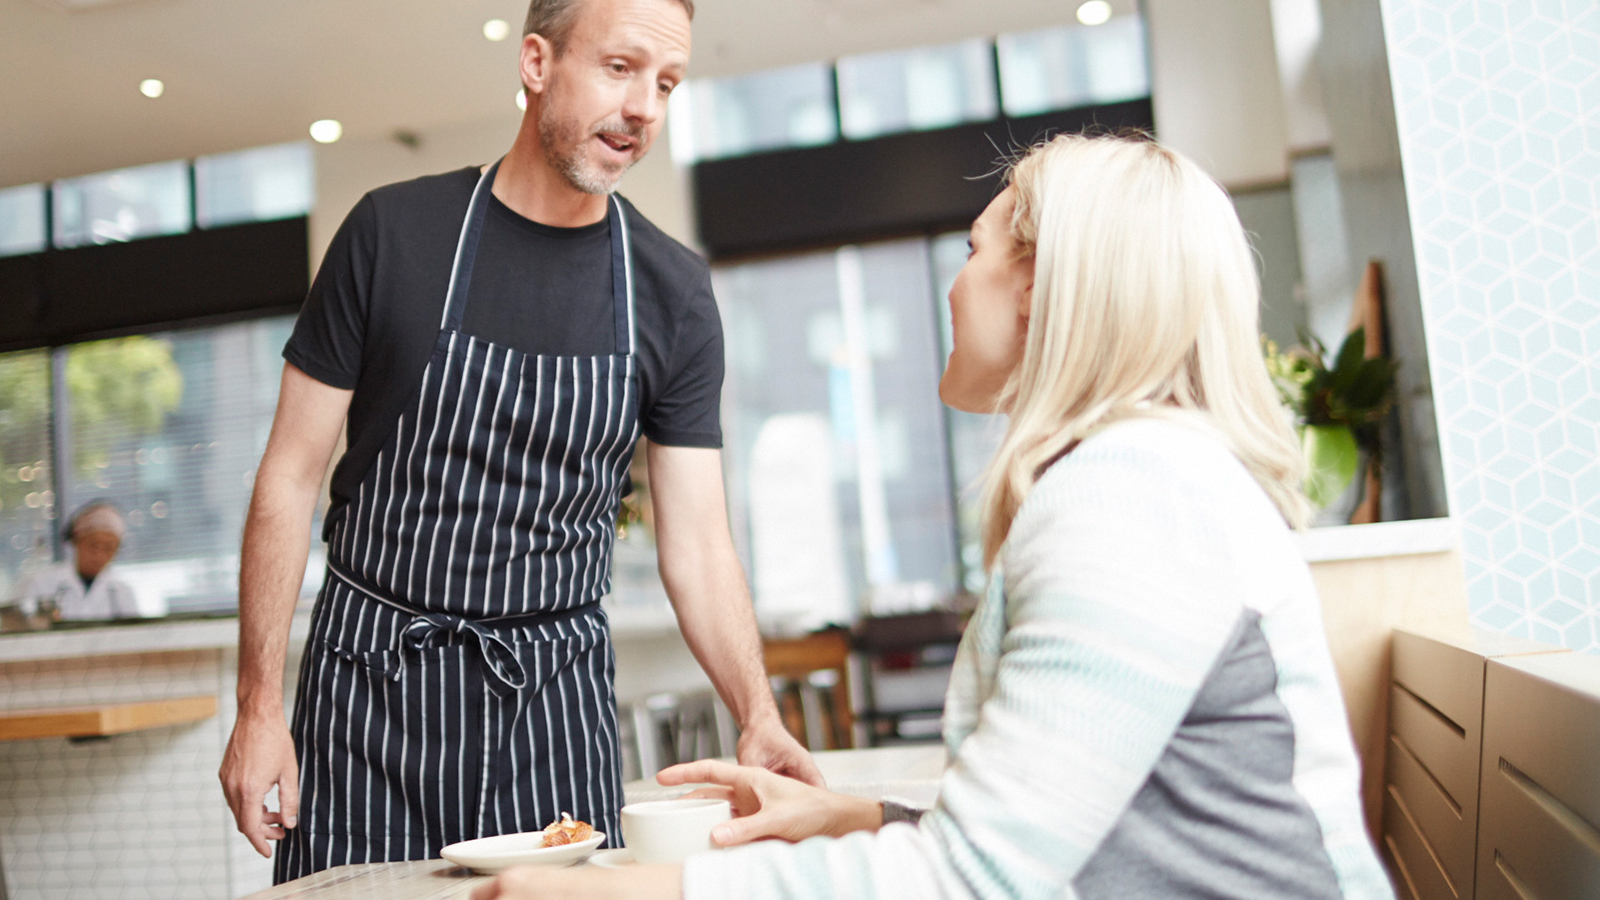 A man talking to a woman seated at a table in a café.